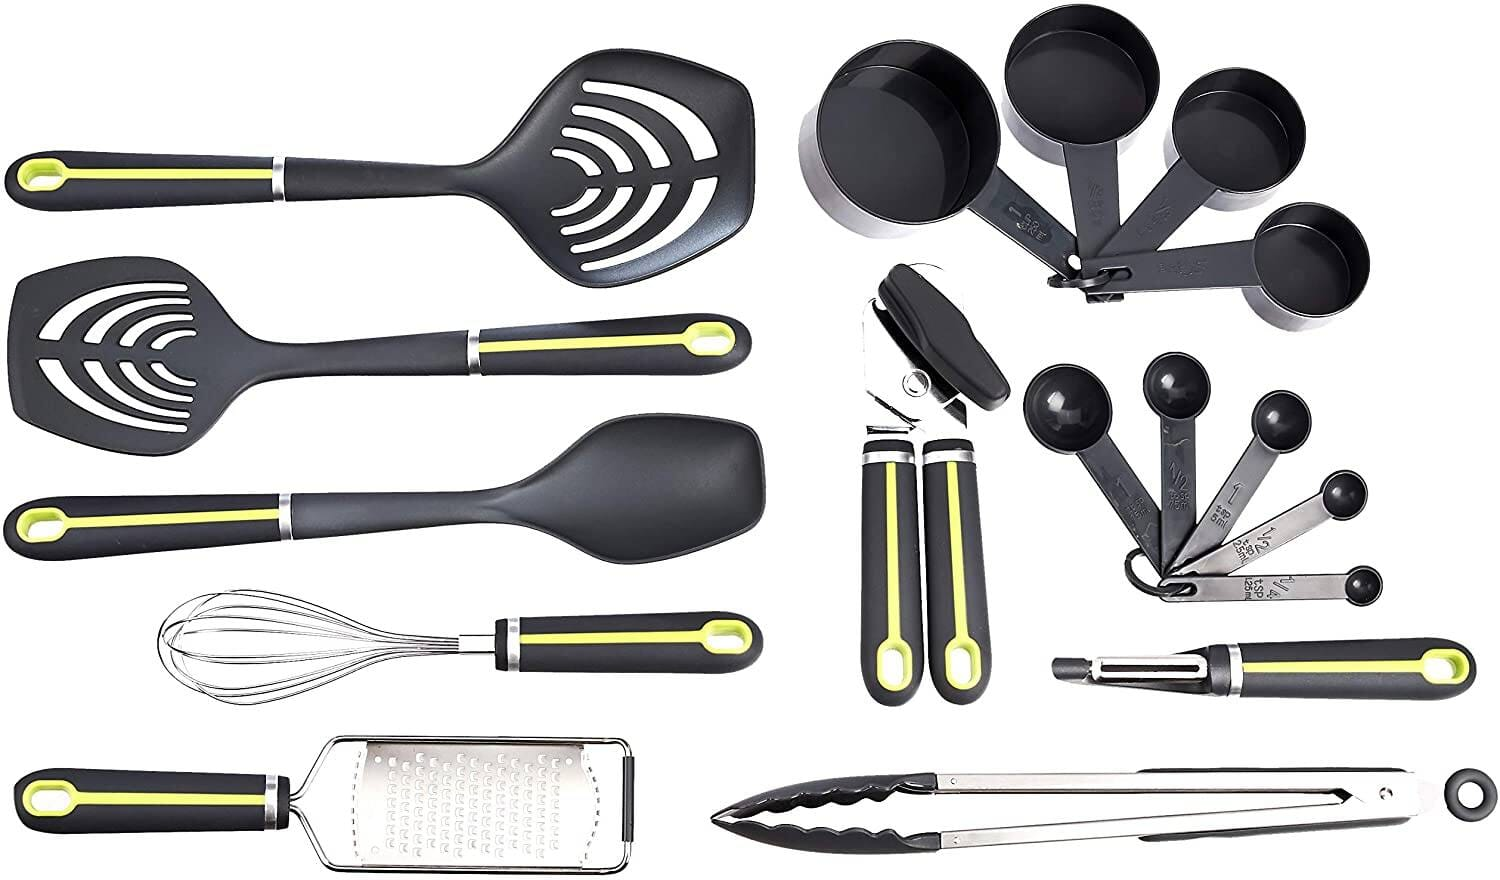 17-Piece Amazon Basics Kitchen Tools and Gadget Set (Grey/Green) $12.90 + Free Shipping w/ Prime or $25+